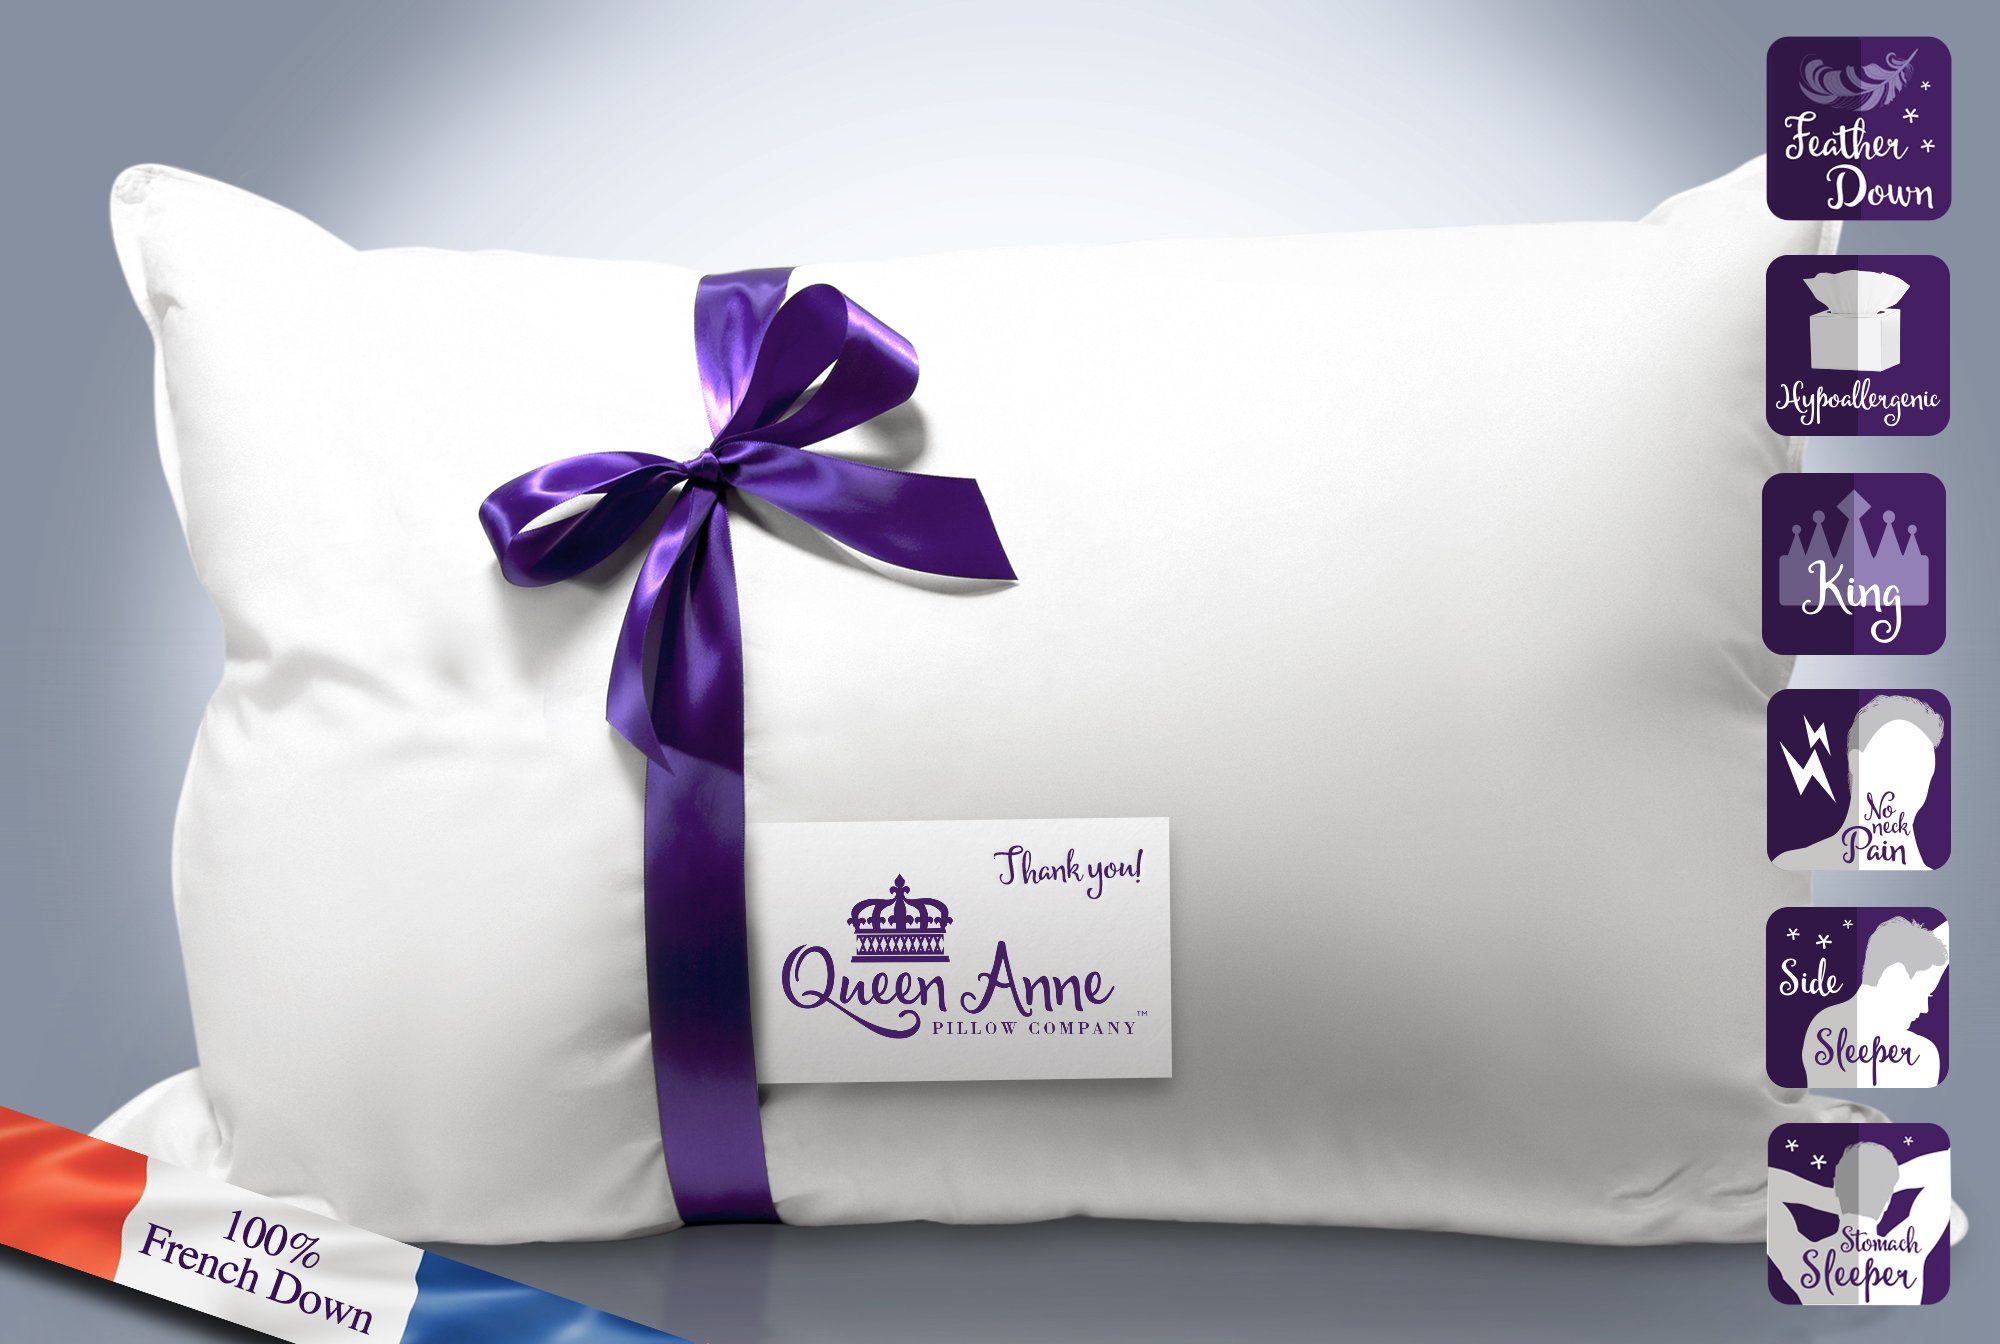 The Duchess - Queen Anne Pillow's Luxury French Feather & Goose Down Blend – Hotel Pillow Collection – USA Made (King Size, Firm Fill)